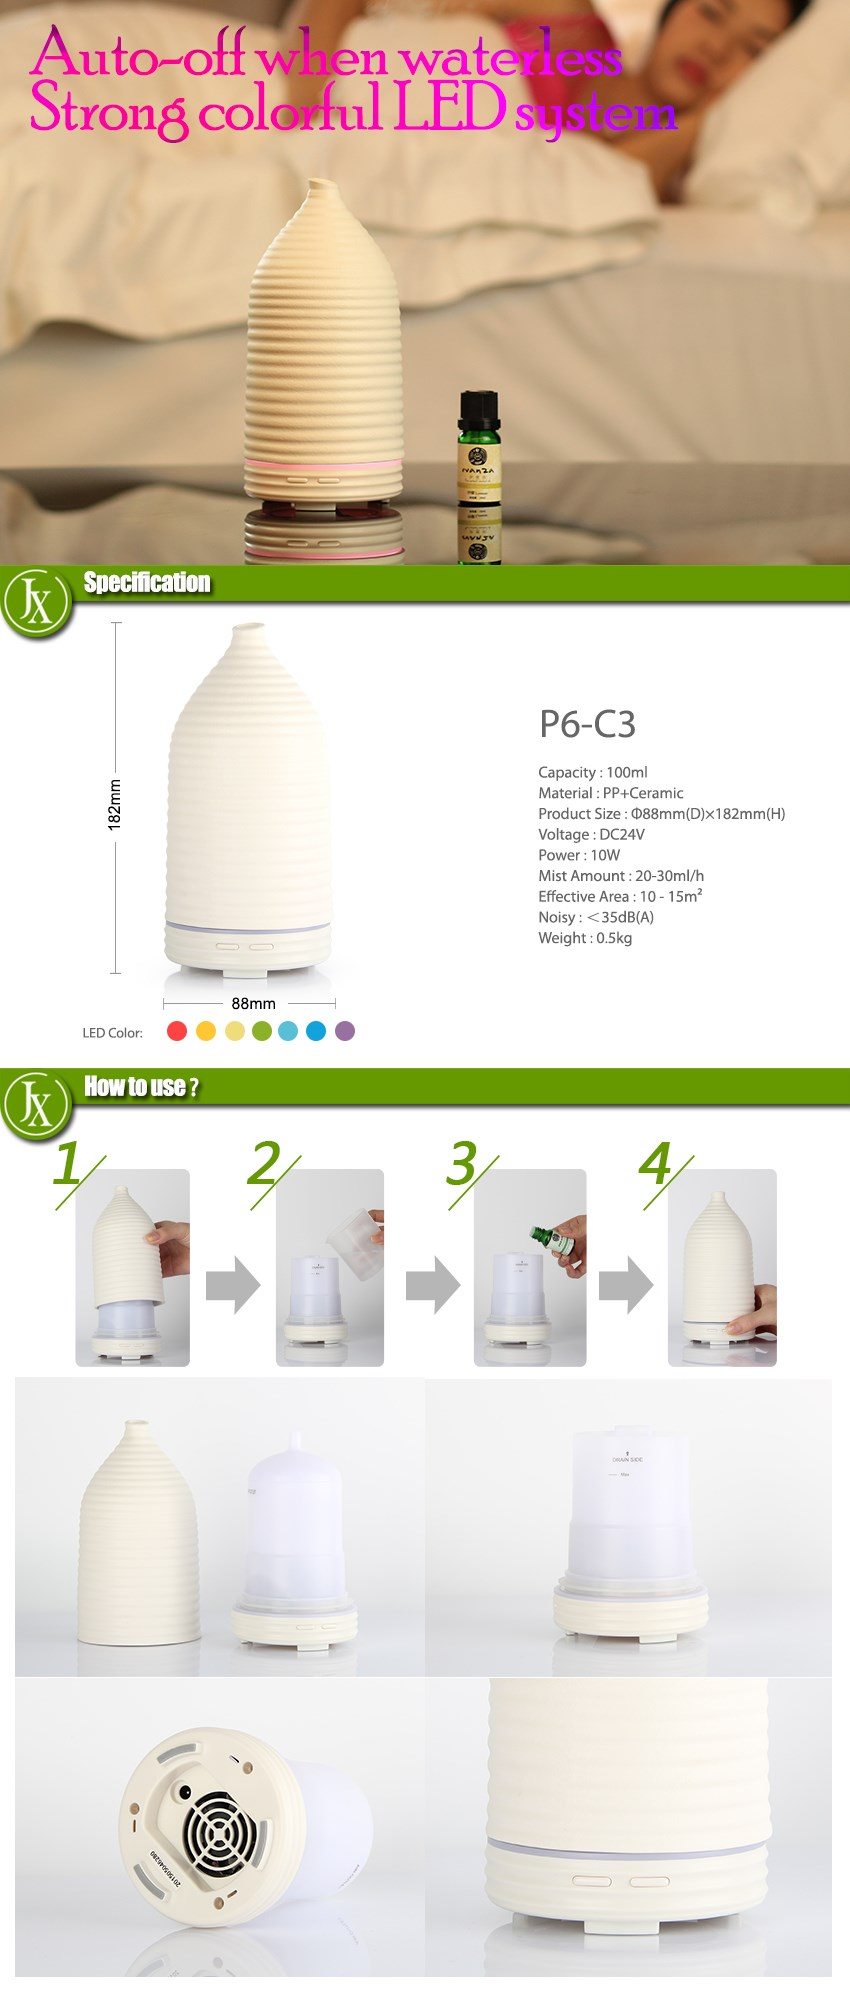 Humidifier Aroma Diffuser / Candle Light Aroma Diffuser / Ceramic Diffuser Aroma